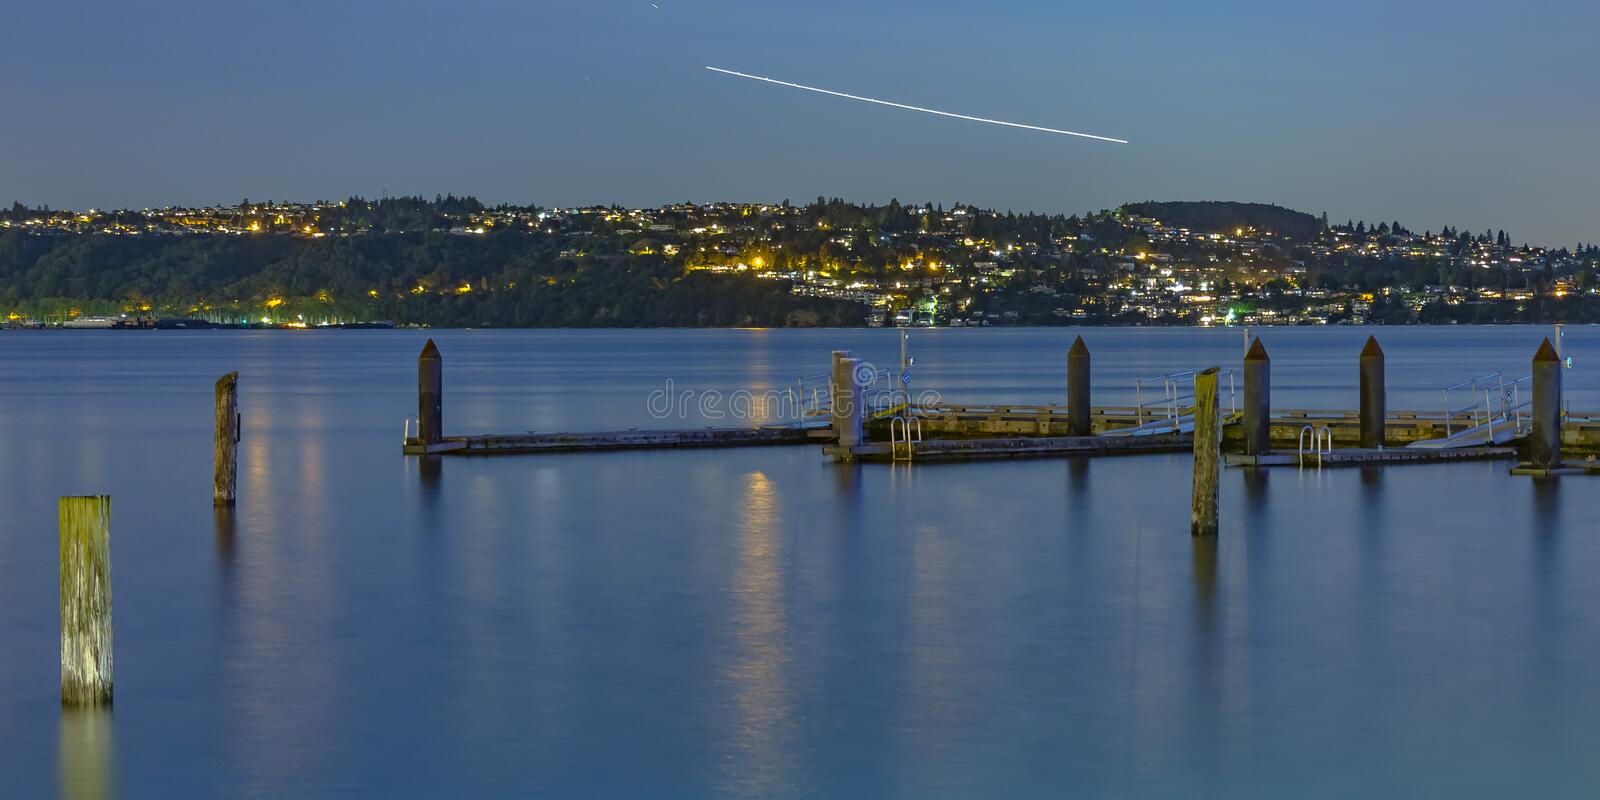 Wooden pillars in Tacoma with contrail in the sky. View of old wooden pillars and dock in Tacoma bay at sunset. A contrail from an aircraft can be seen in the royalty free stock photo